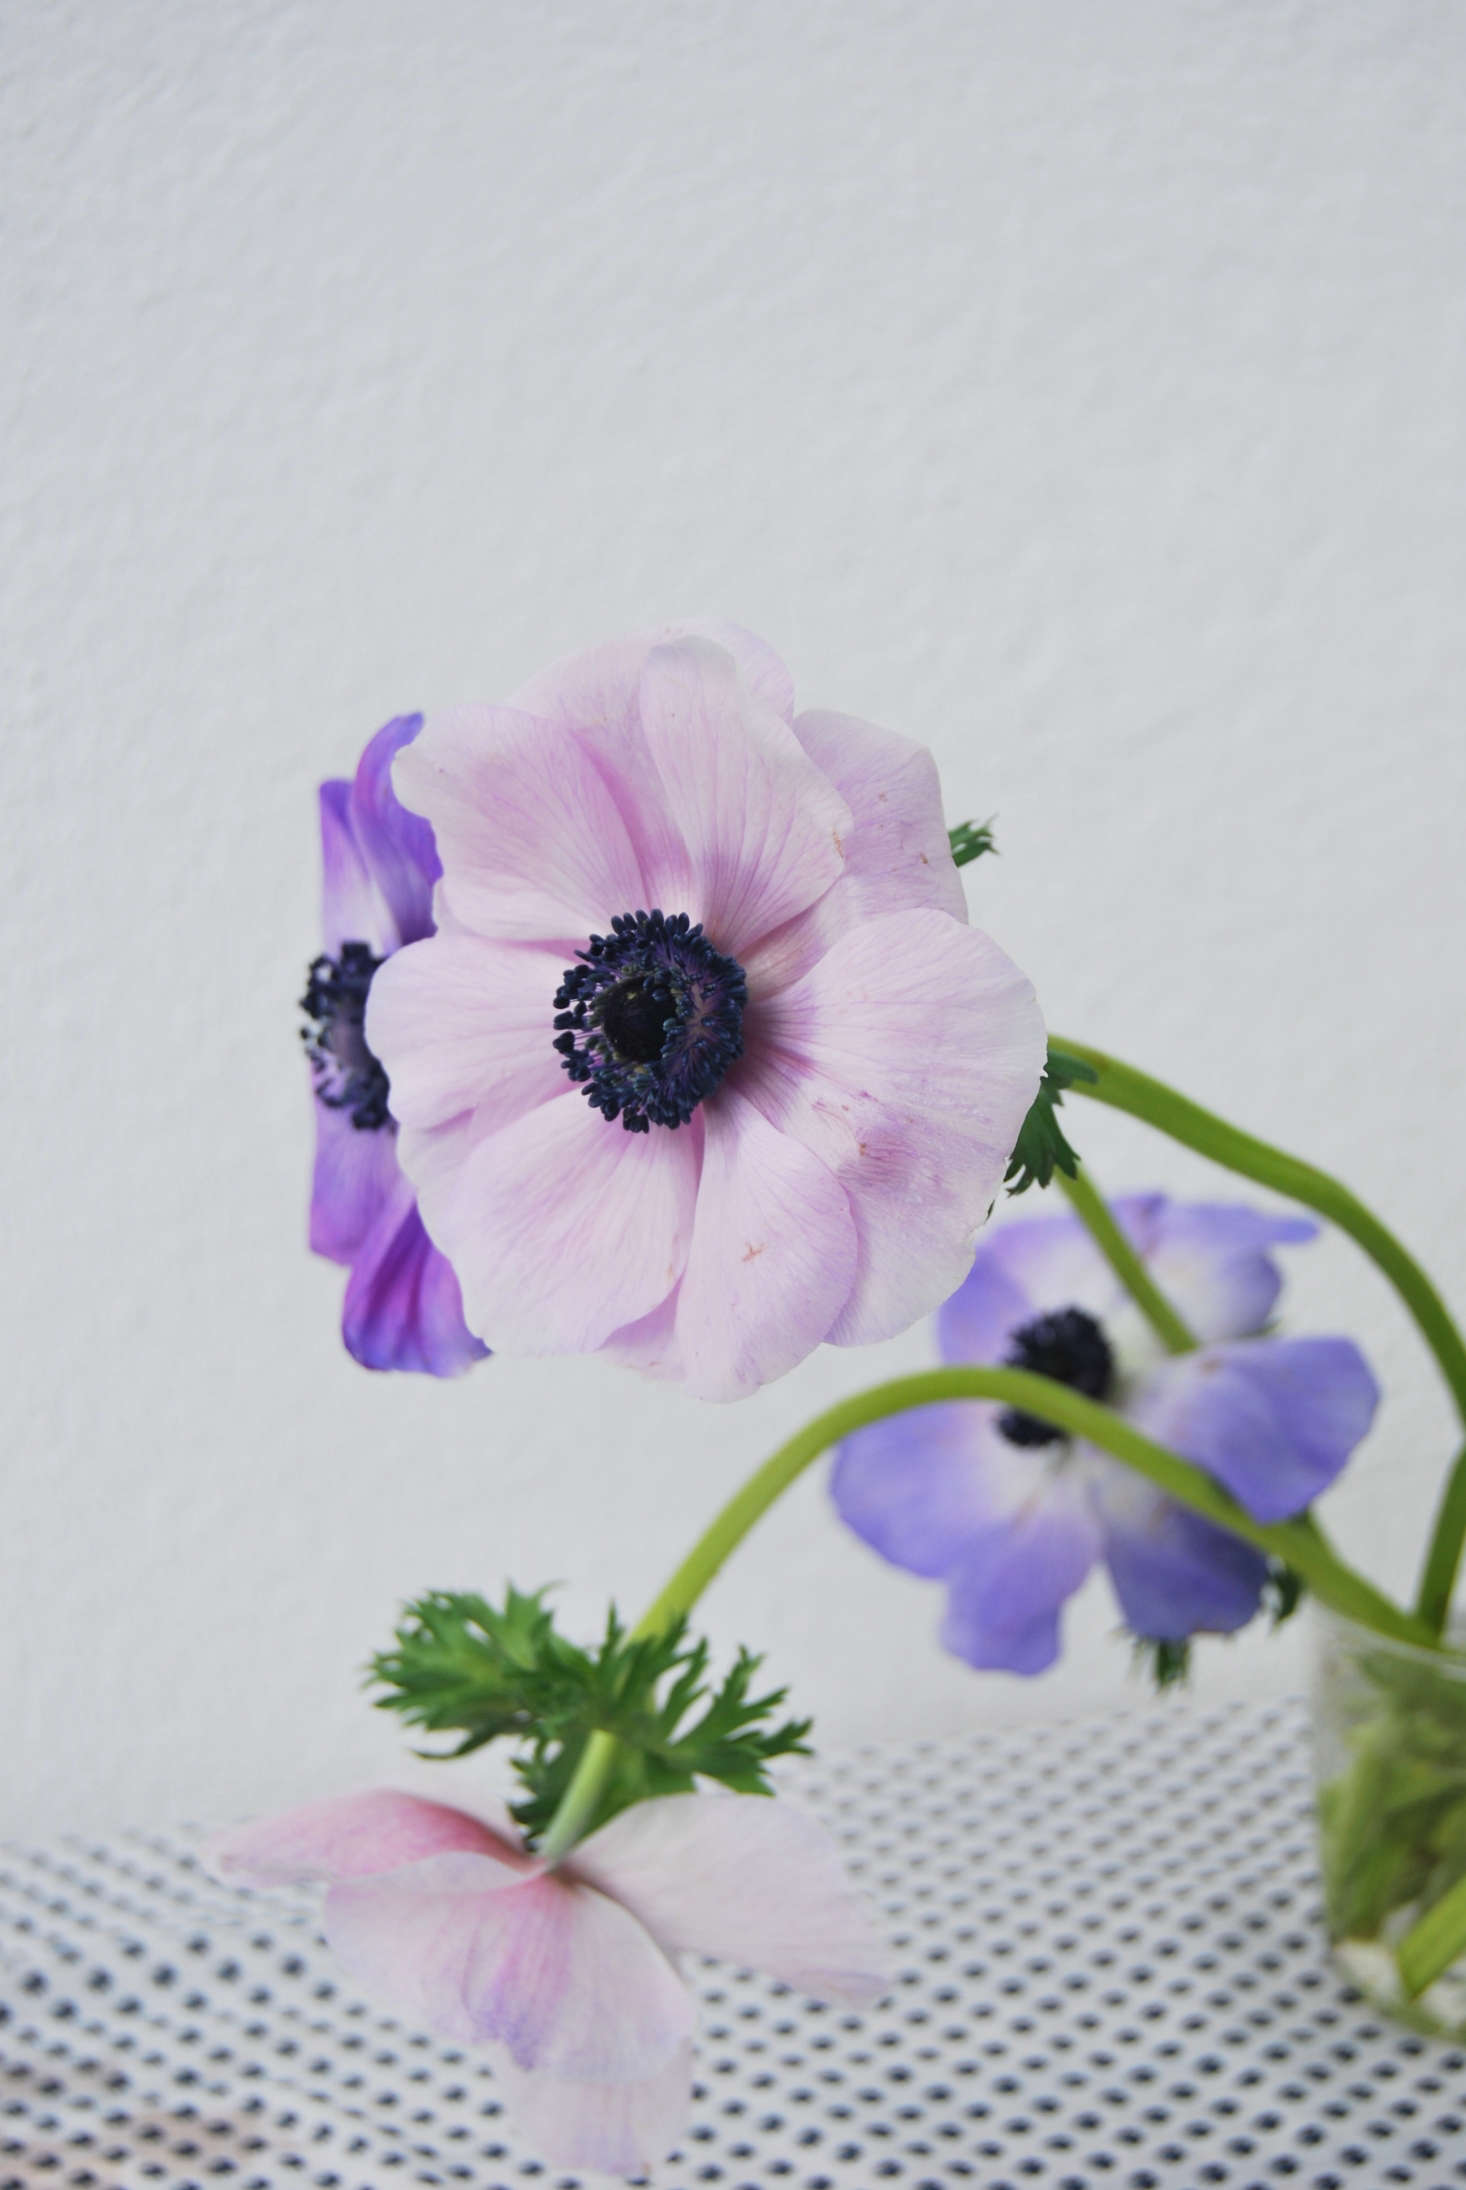 Keep anemones away from direct light so cut stems will last as long as possible.